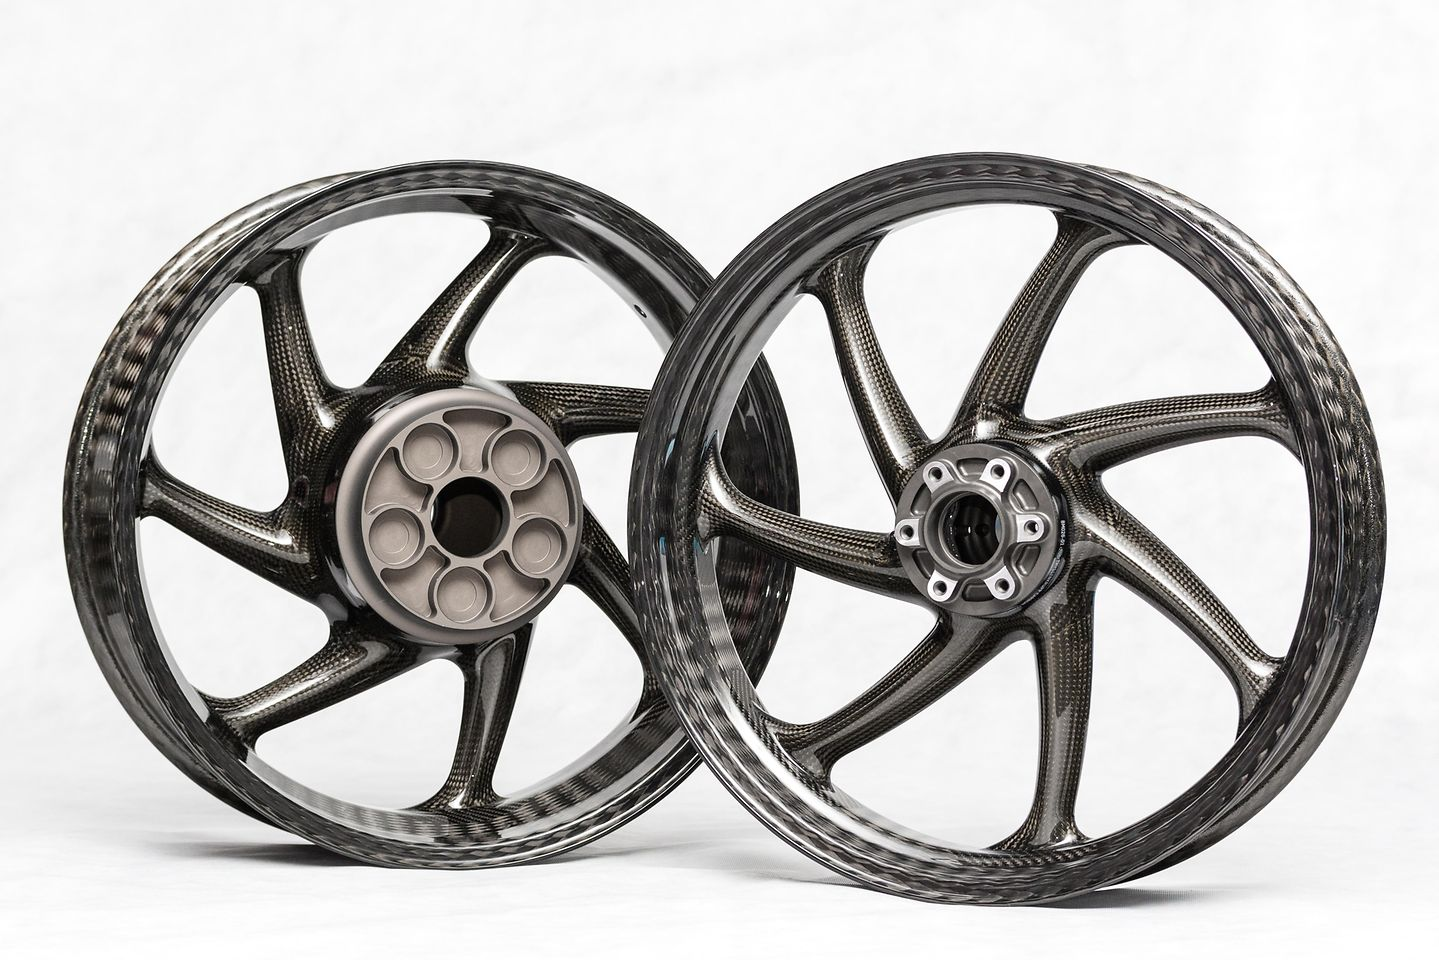 Henkel's Loctite MAX5 has helped ThyssenKrupp Carbon Components pioneer a new generation of ultra-light braided carbon motorcycle wheels